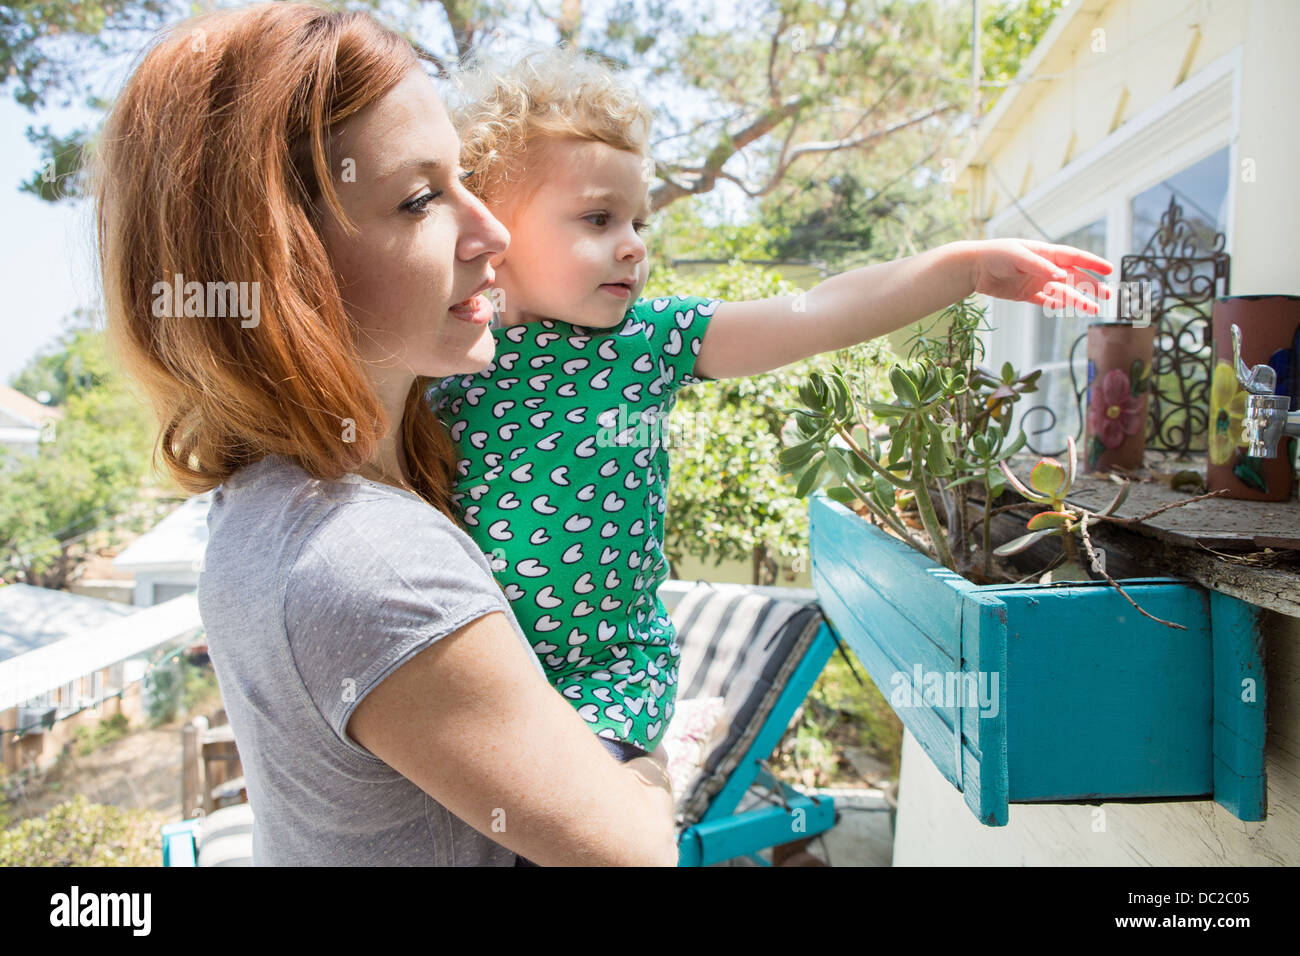 Mother and child exploring - Stock Image